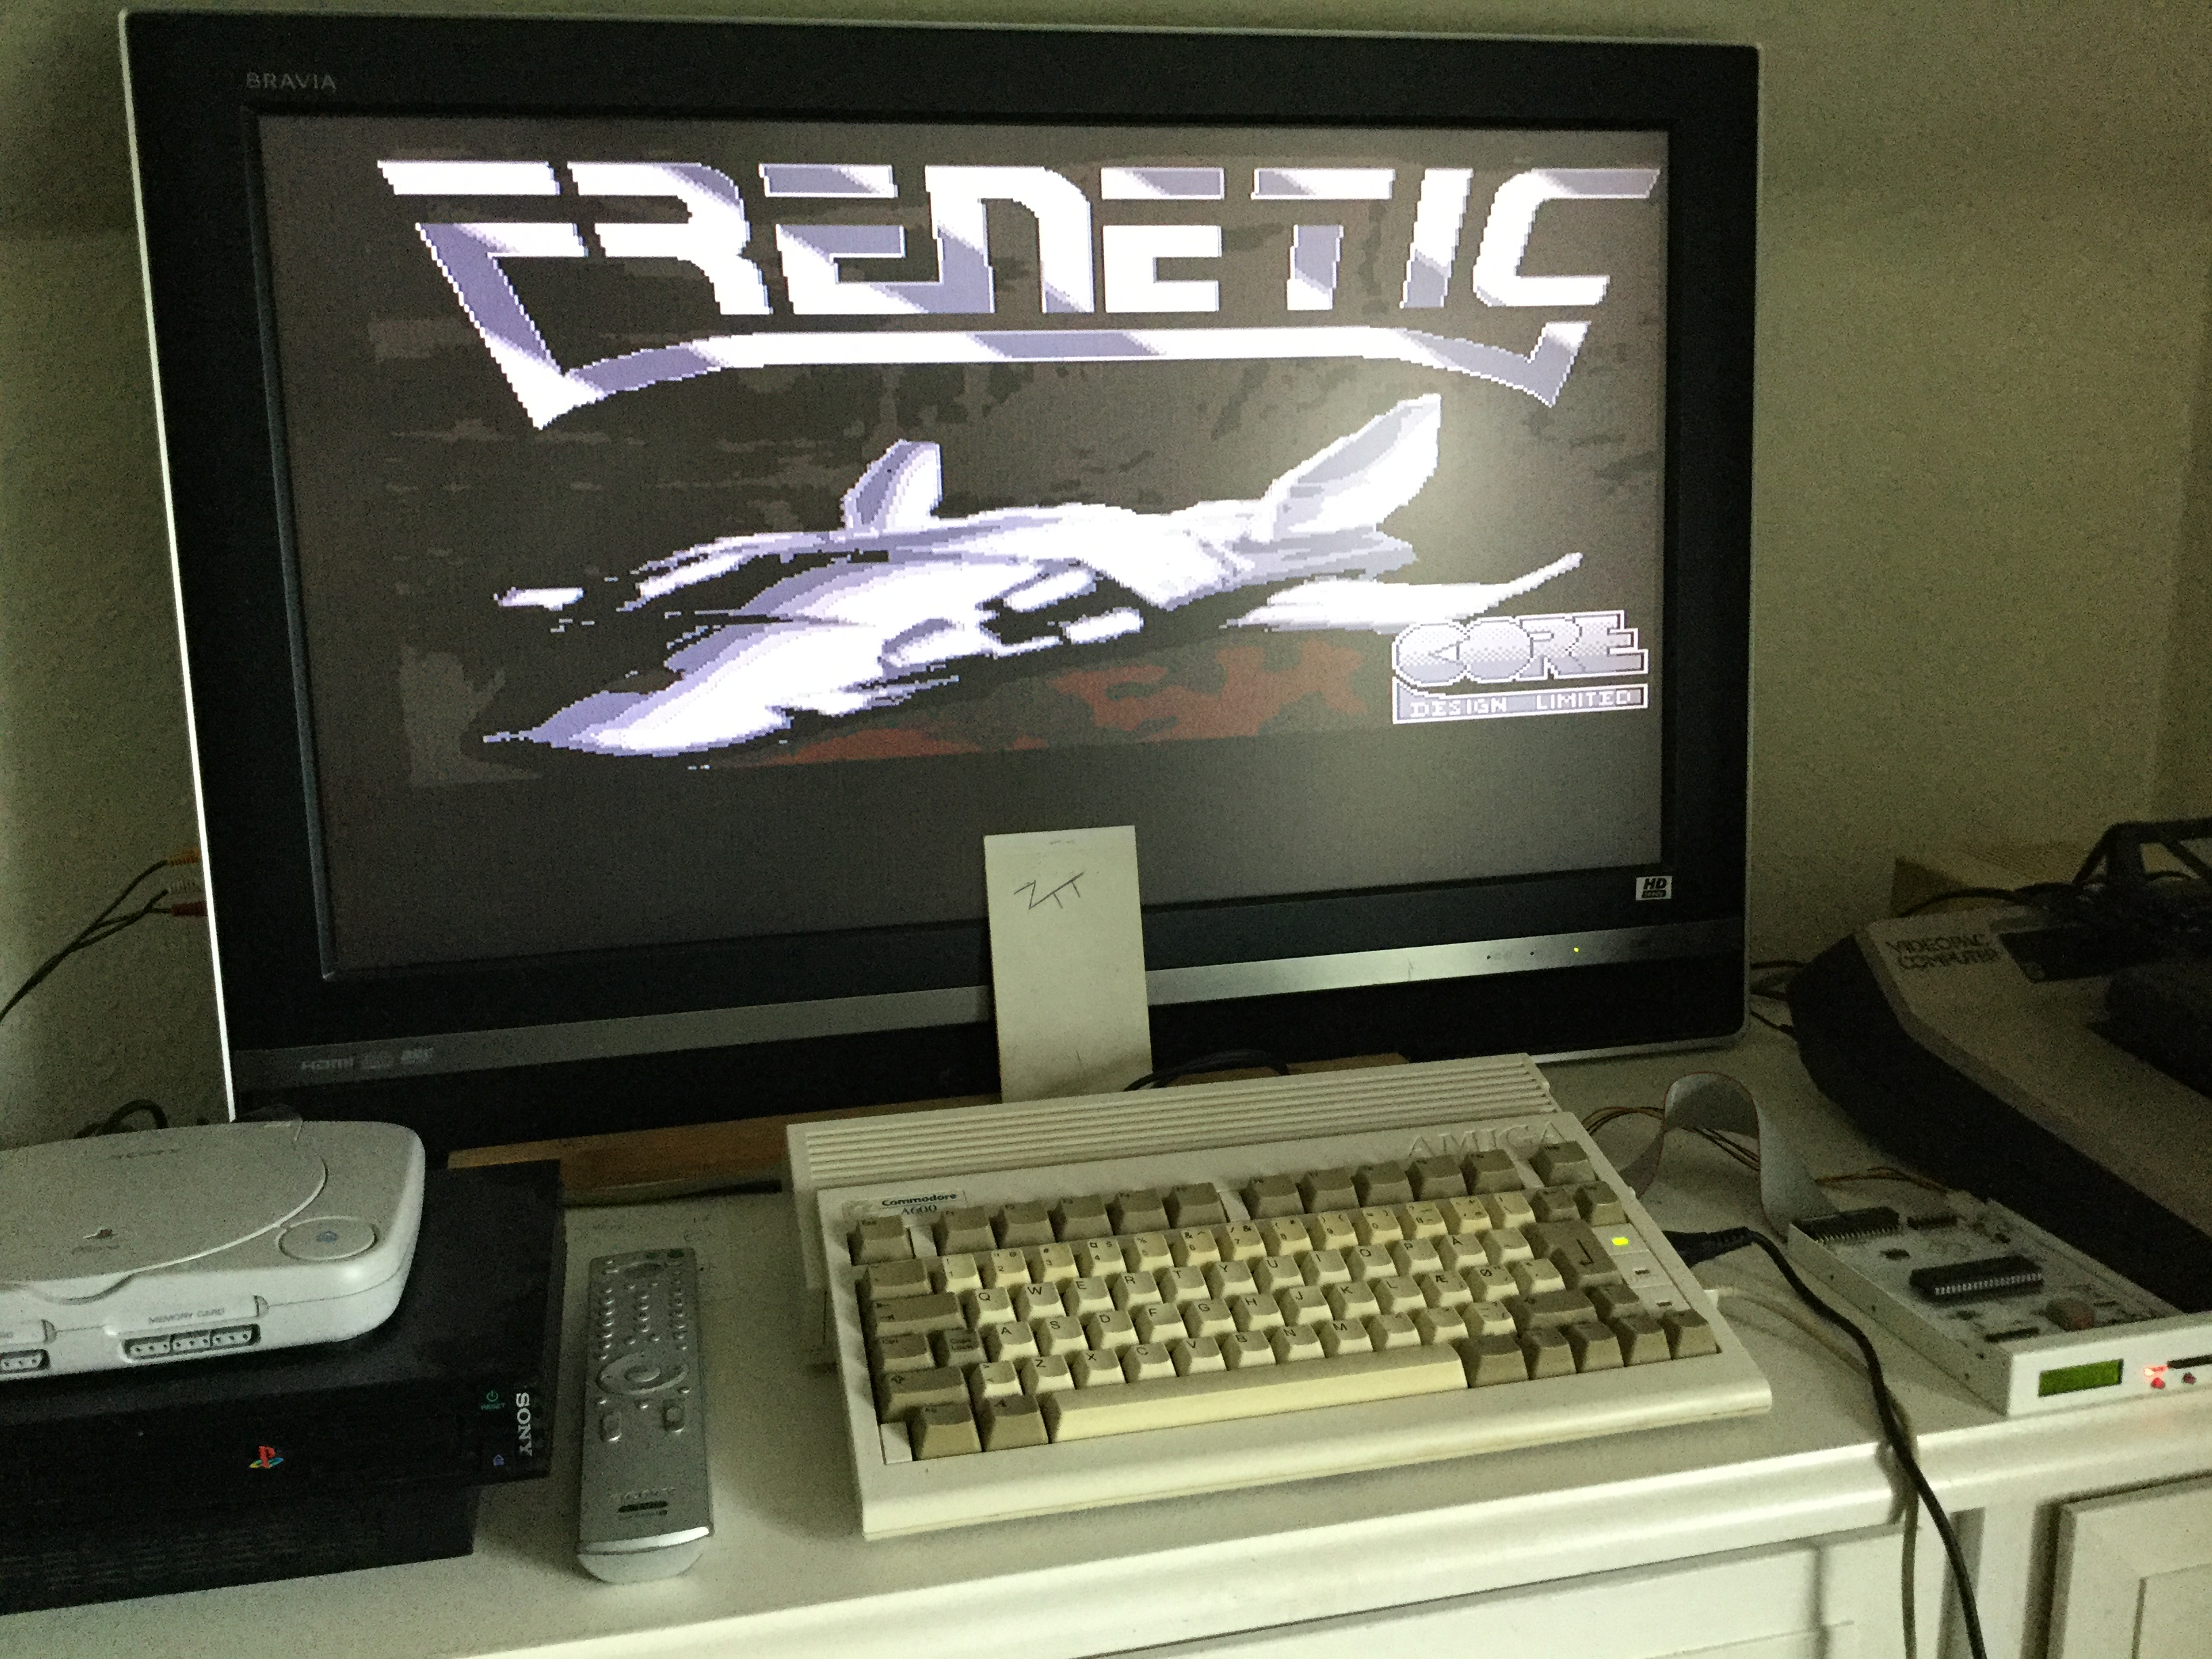 Frankie: Frenetic (Amiga) 83,547 points on 2019-07-06 12:08:15